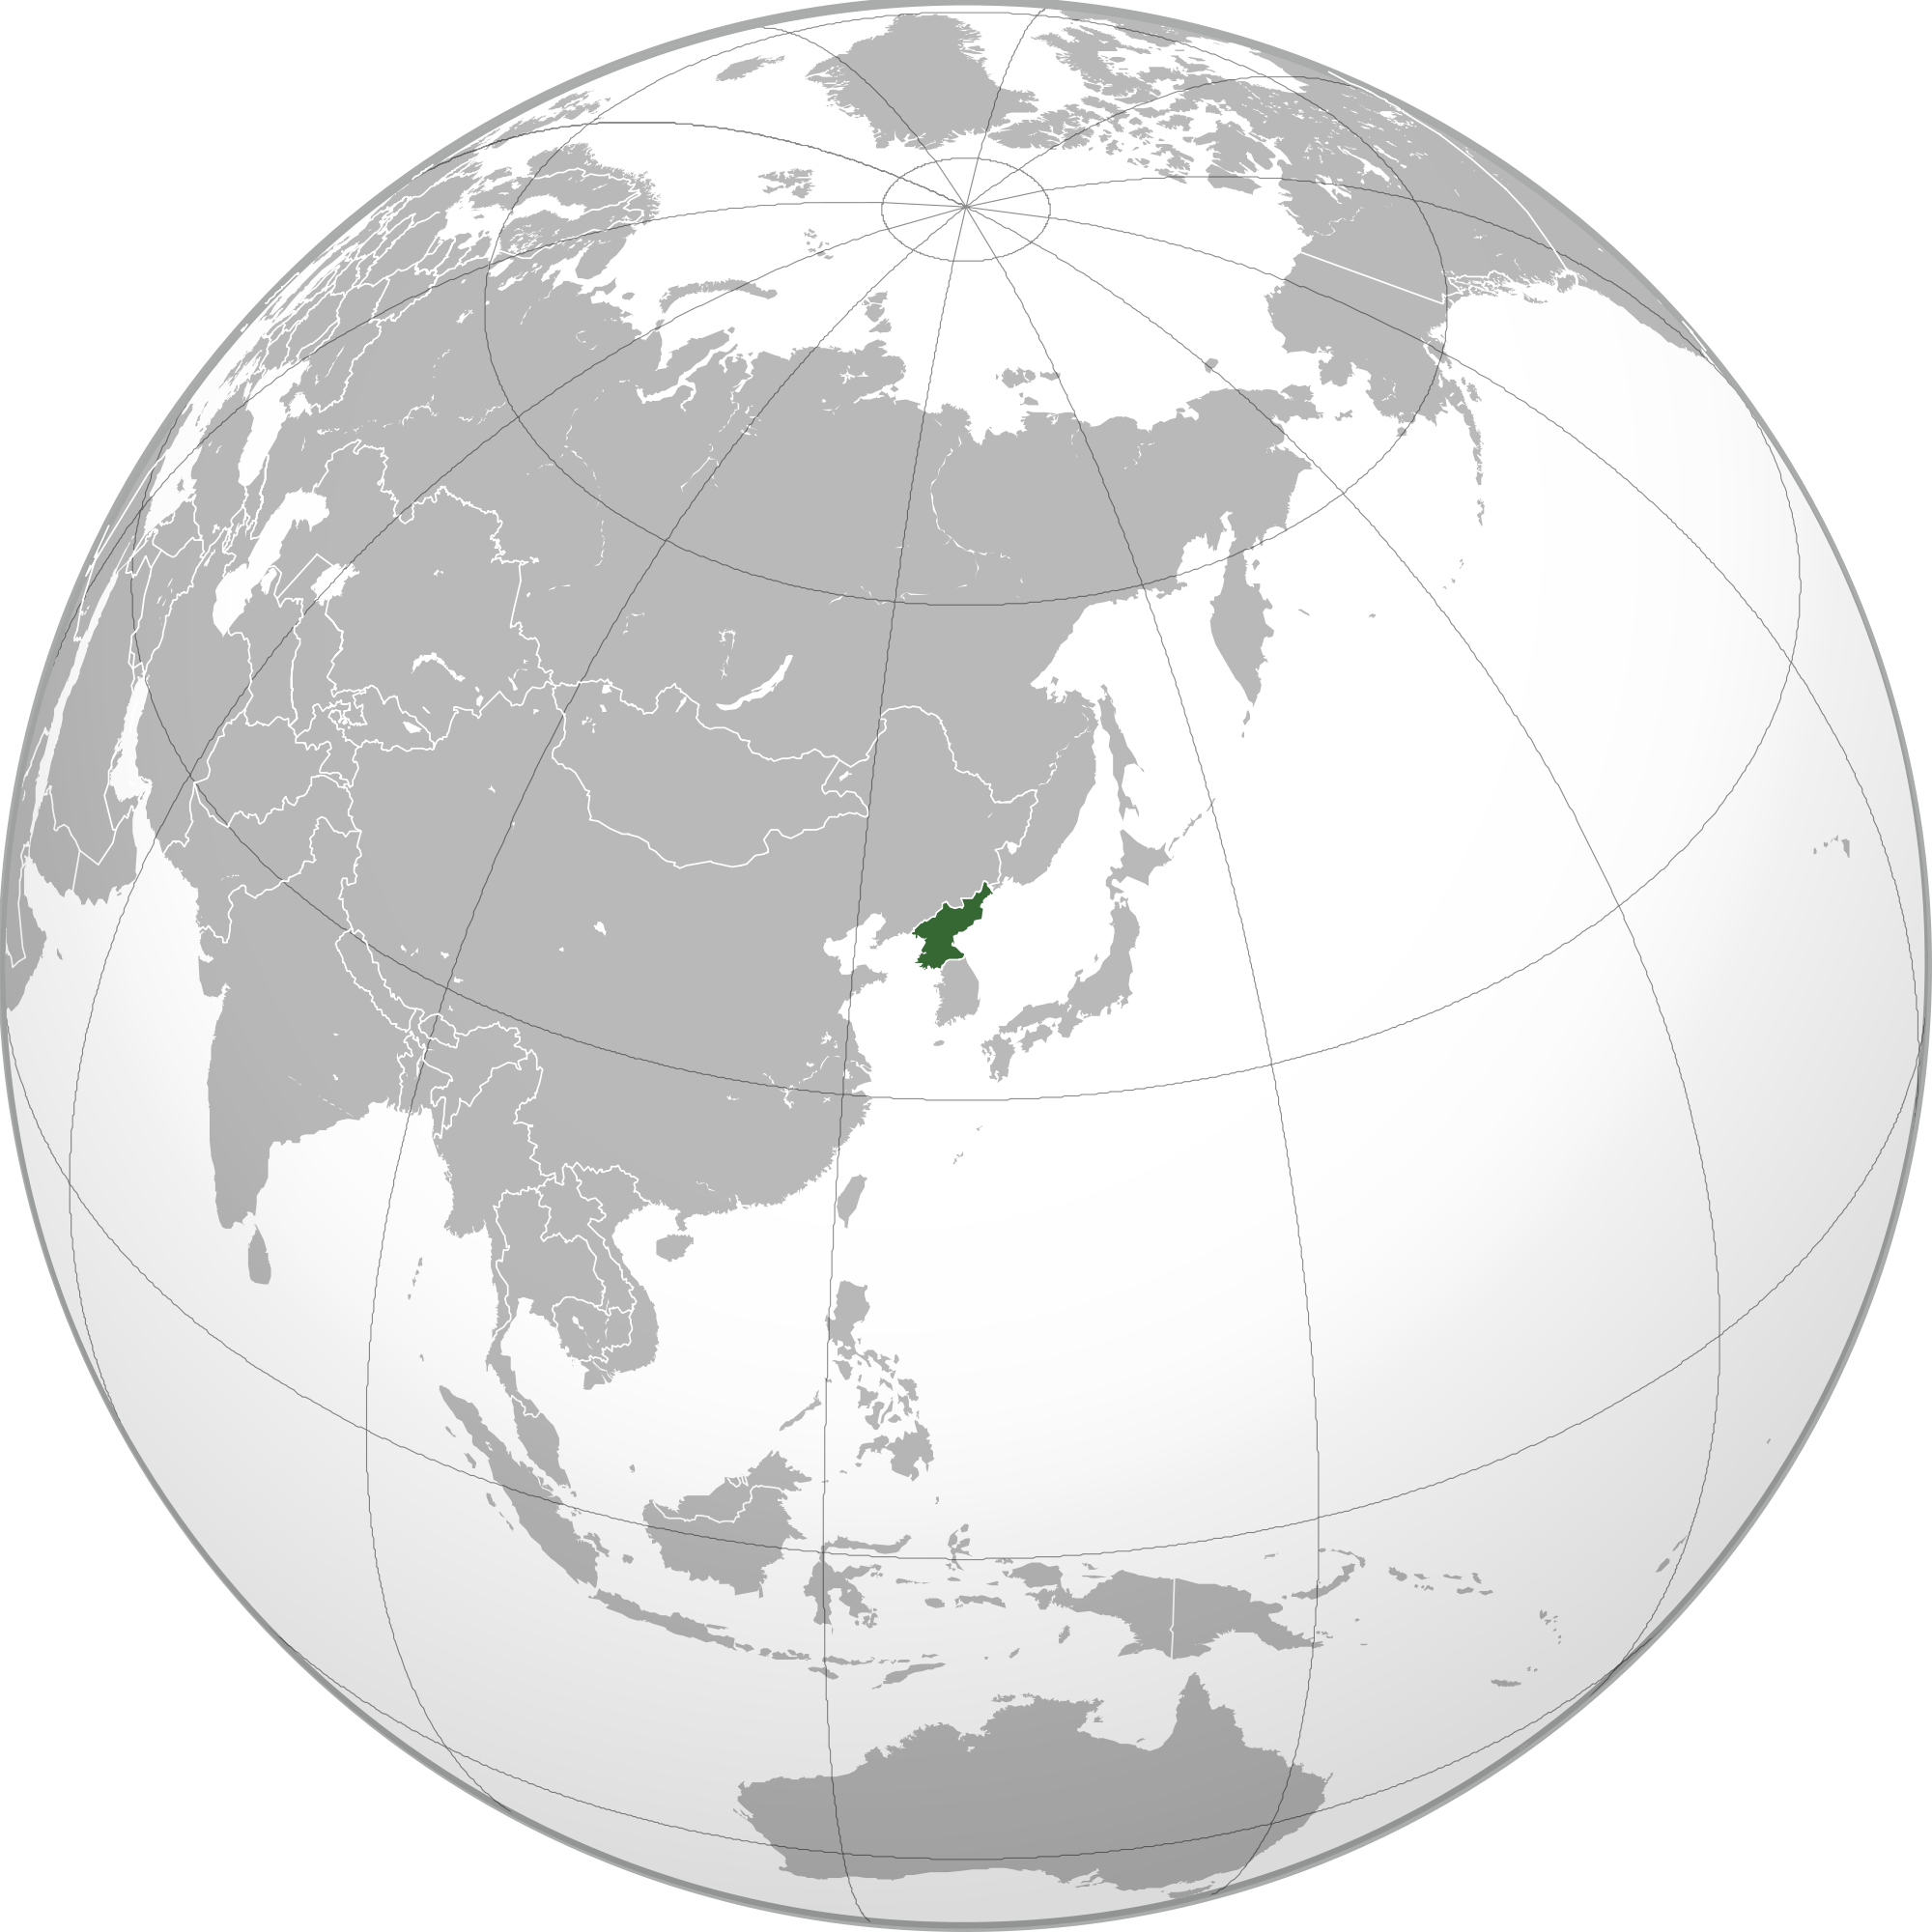 Location of the North Korea in the World Map